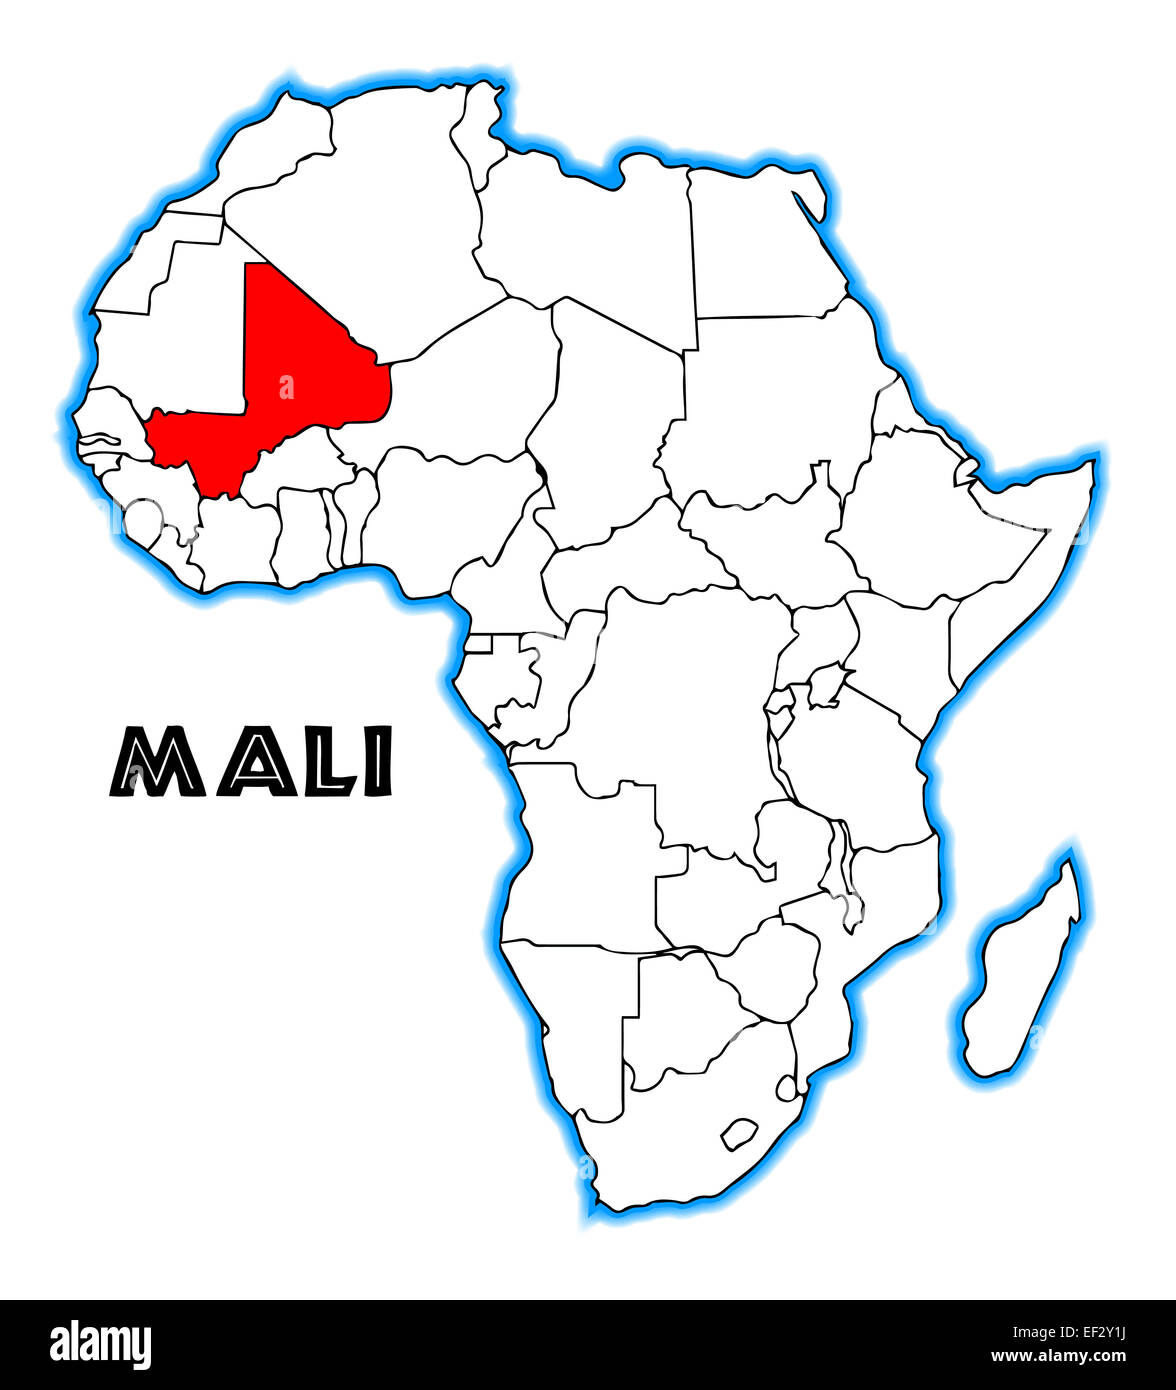 Mali Outline Inset Into A Map Of Africa Over A White